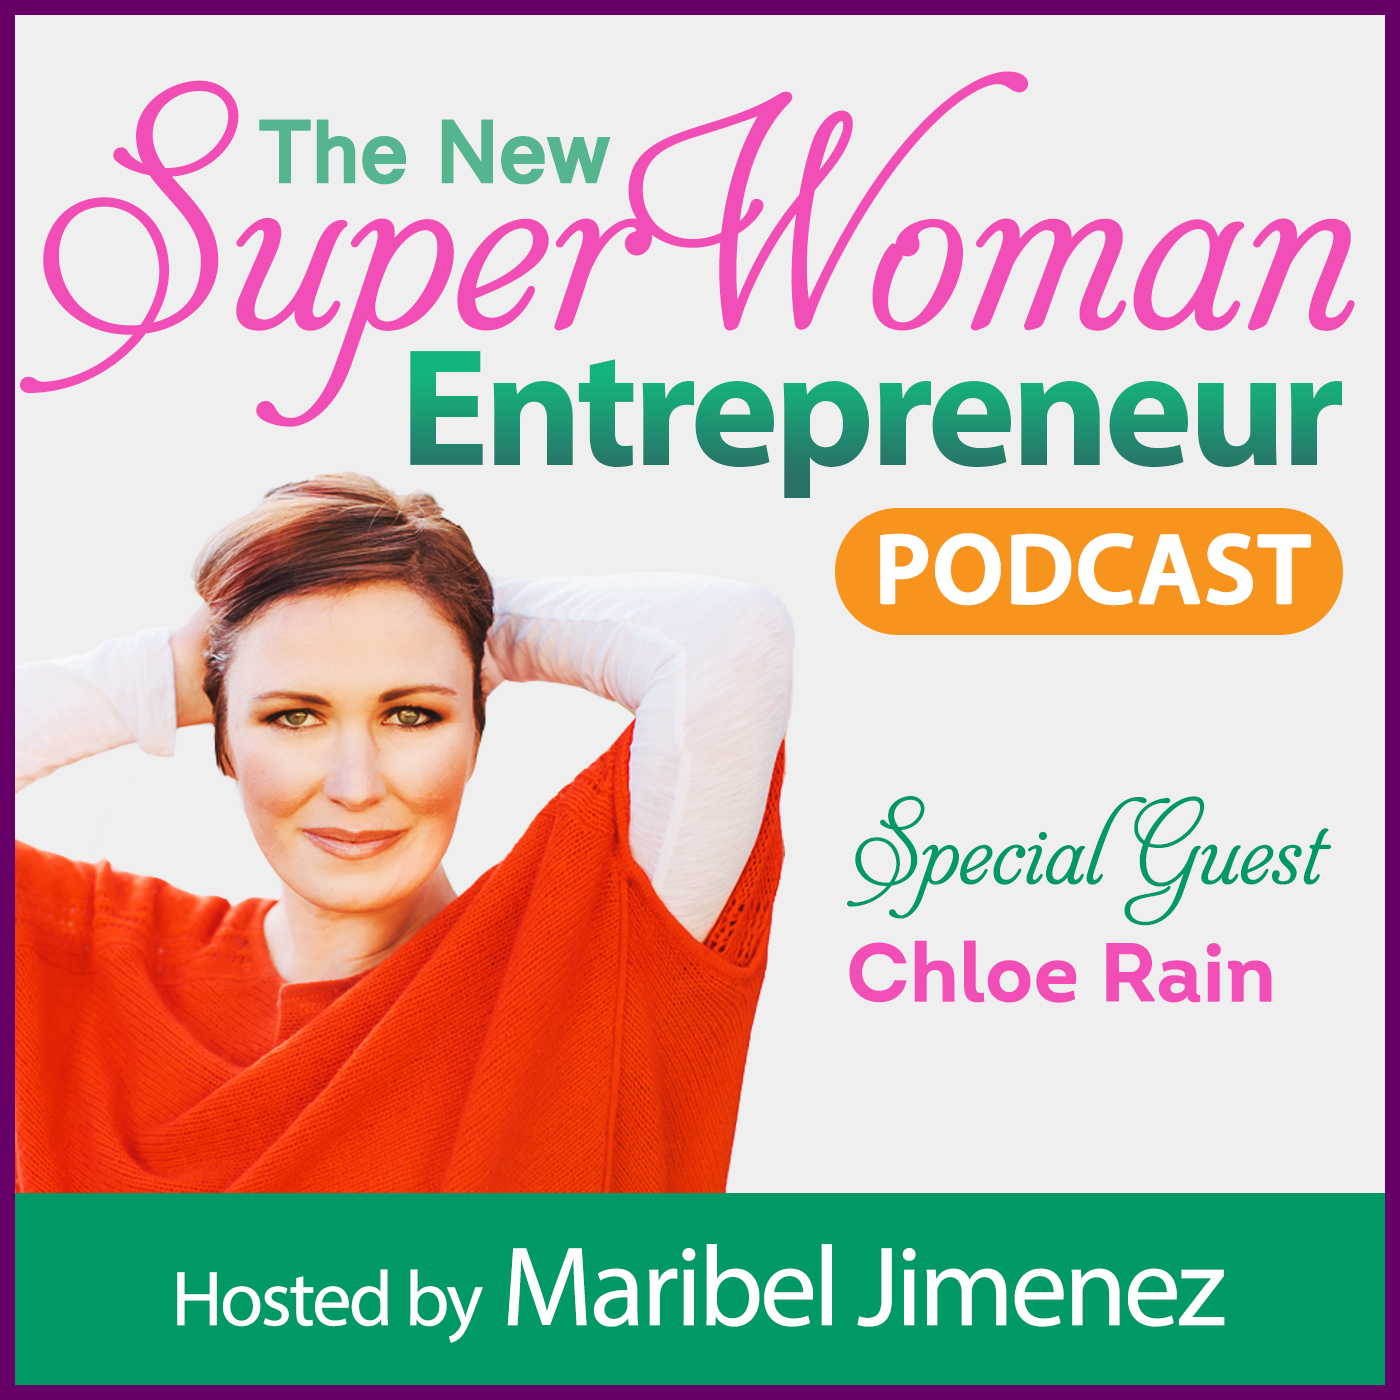 Your Authentic Self & Overcoming Labels with Chloe Rain, Founder of Explore Deeply Superwoman Entrepreneur Podcast